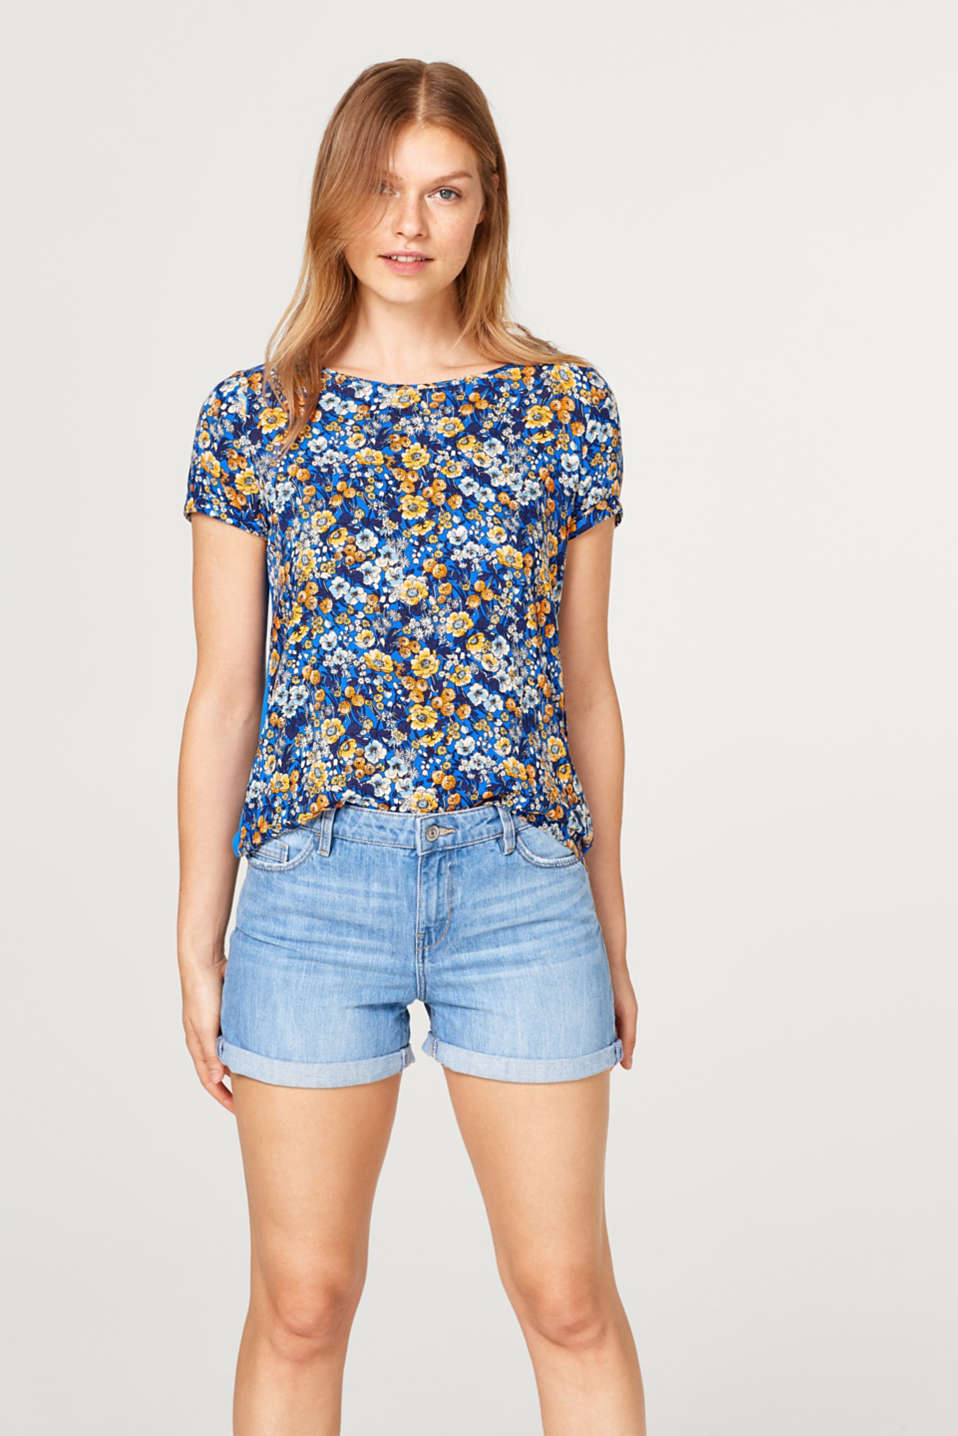 edc - Lightweight blouse top with a colourful print